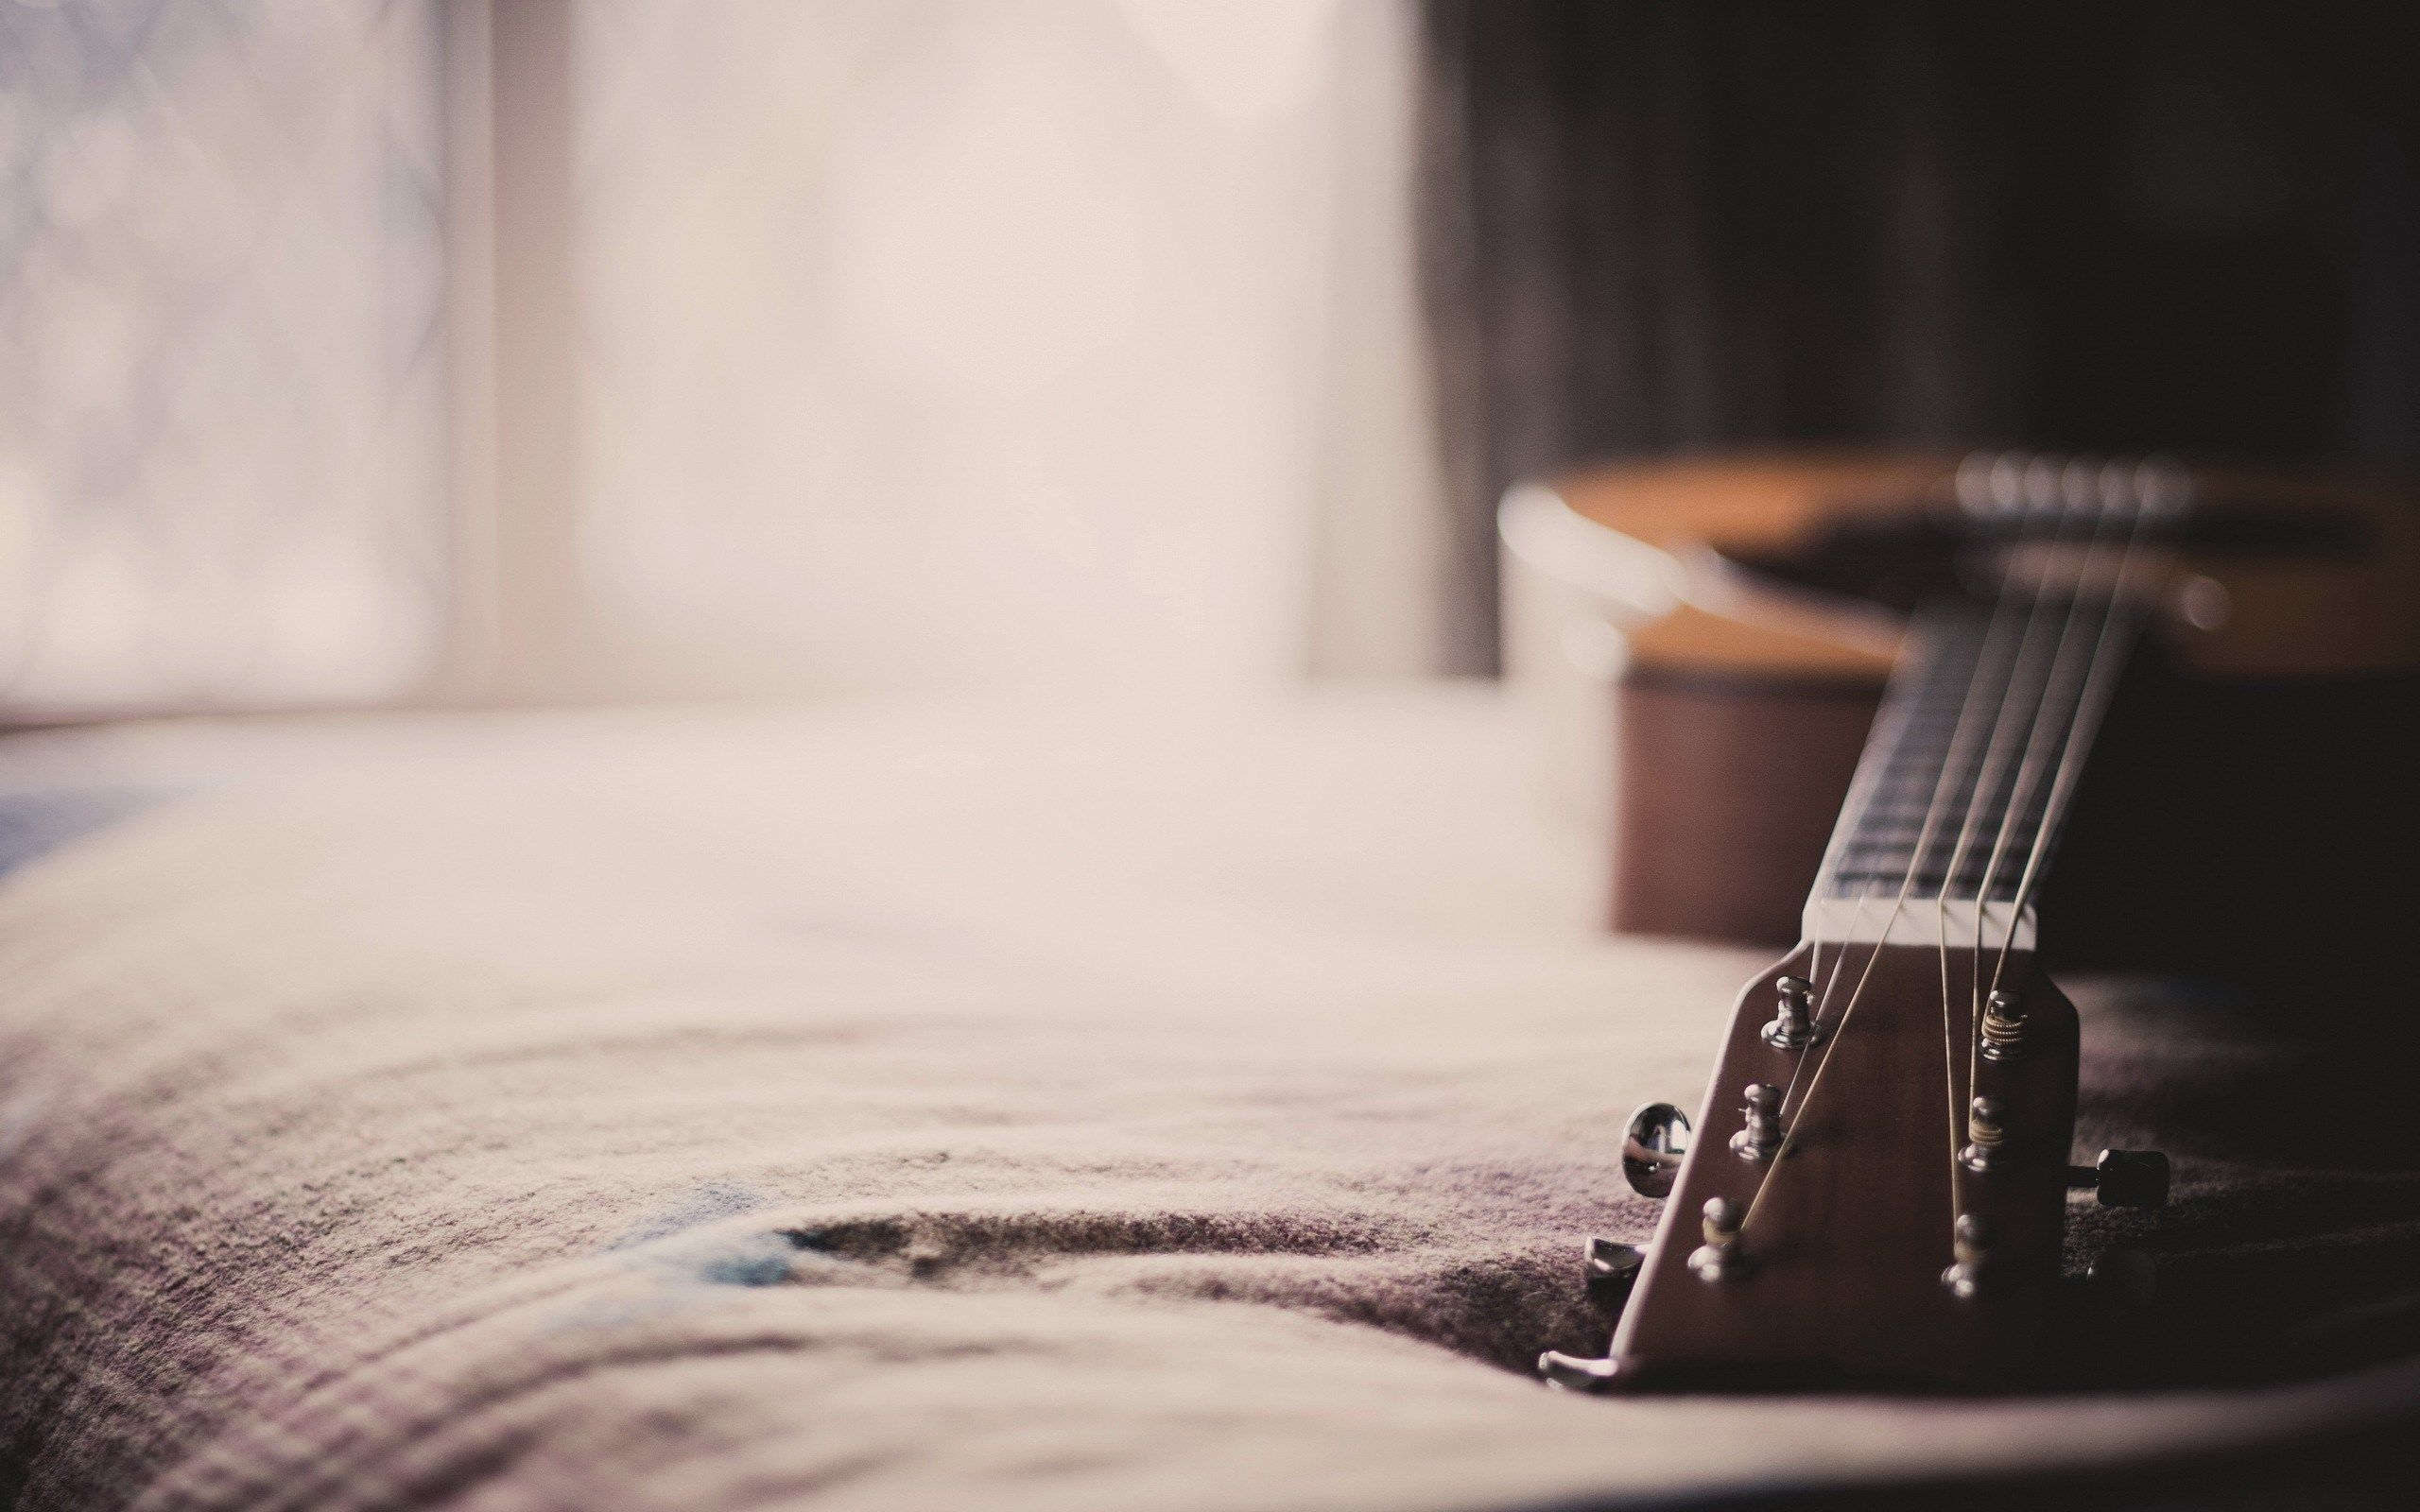 Photography Guitar Music Hd Wallpaper Freehdwall Com Free Hd